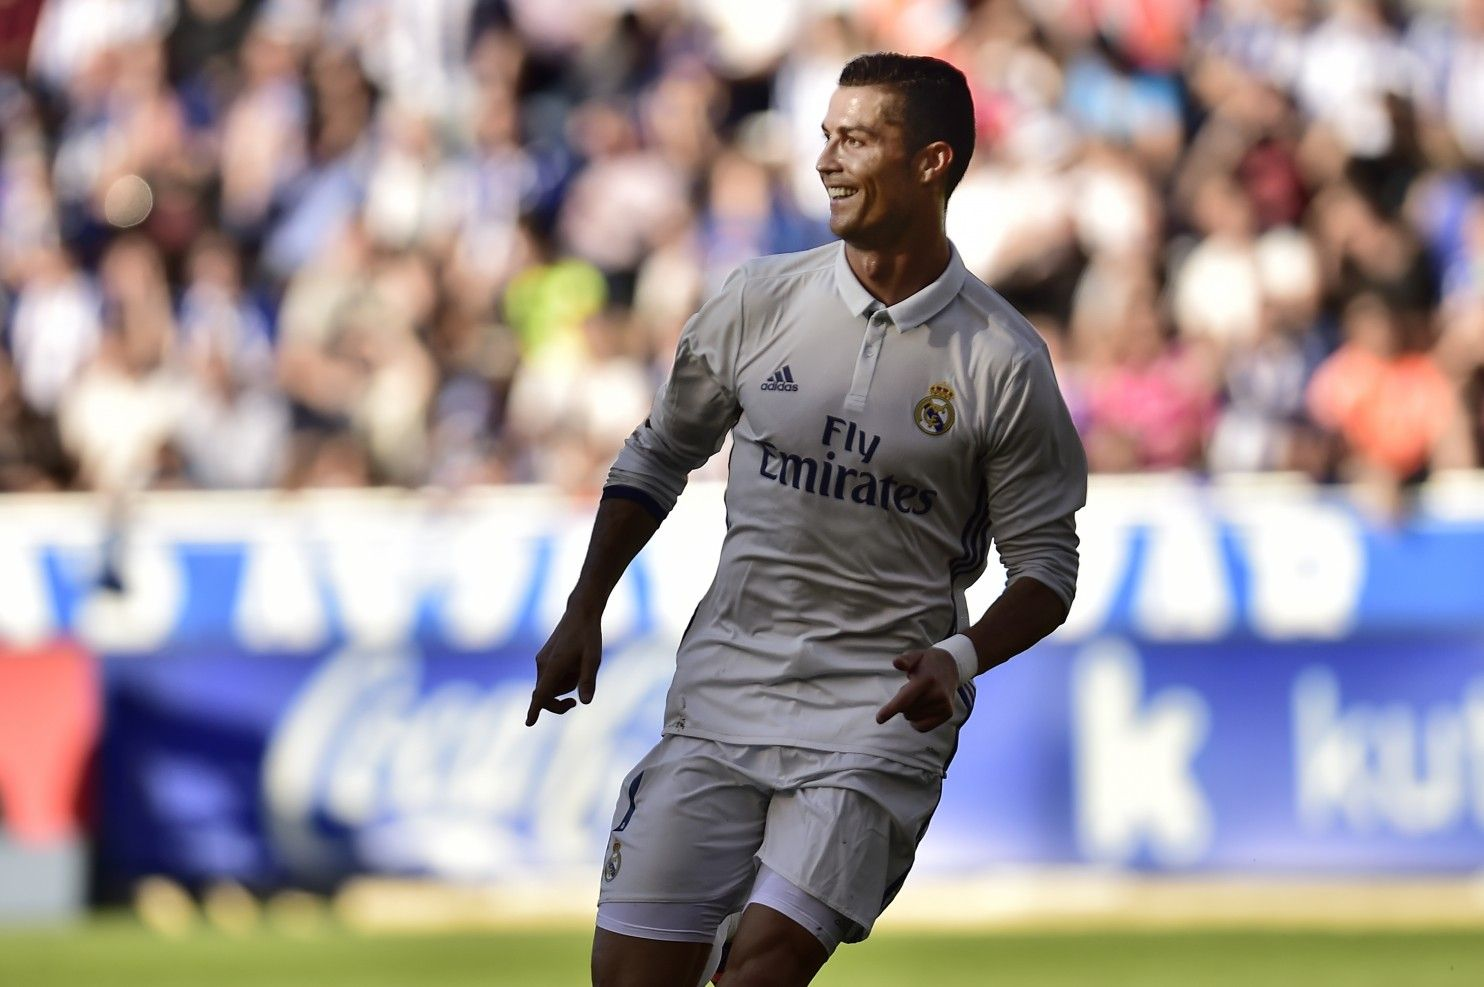 awesome Ronaldo 2 goals shy of 100 in European competitions